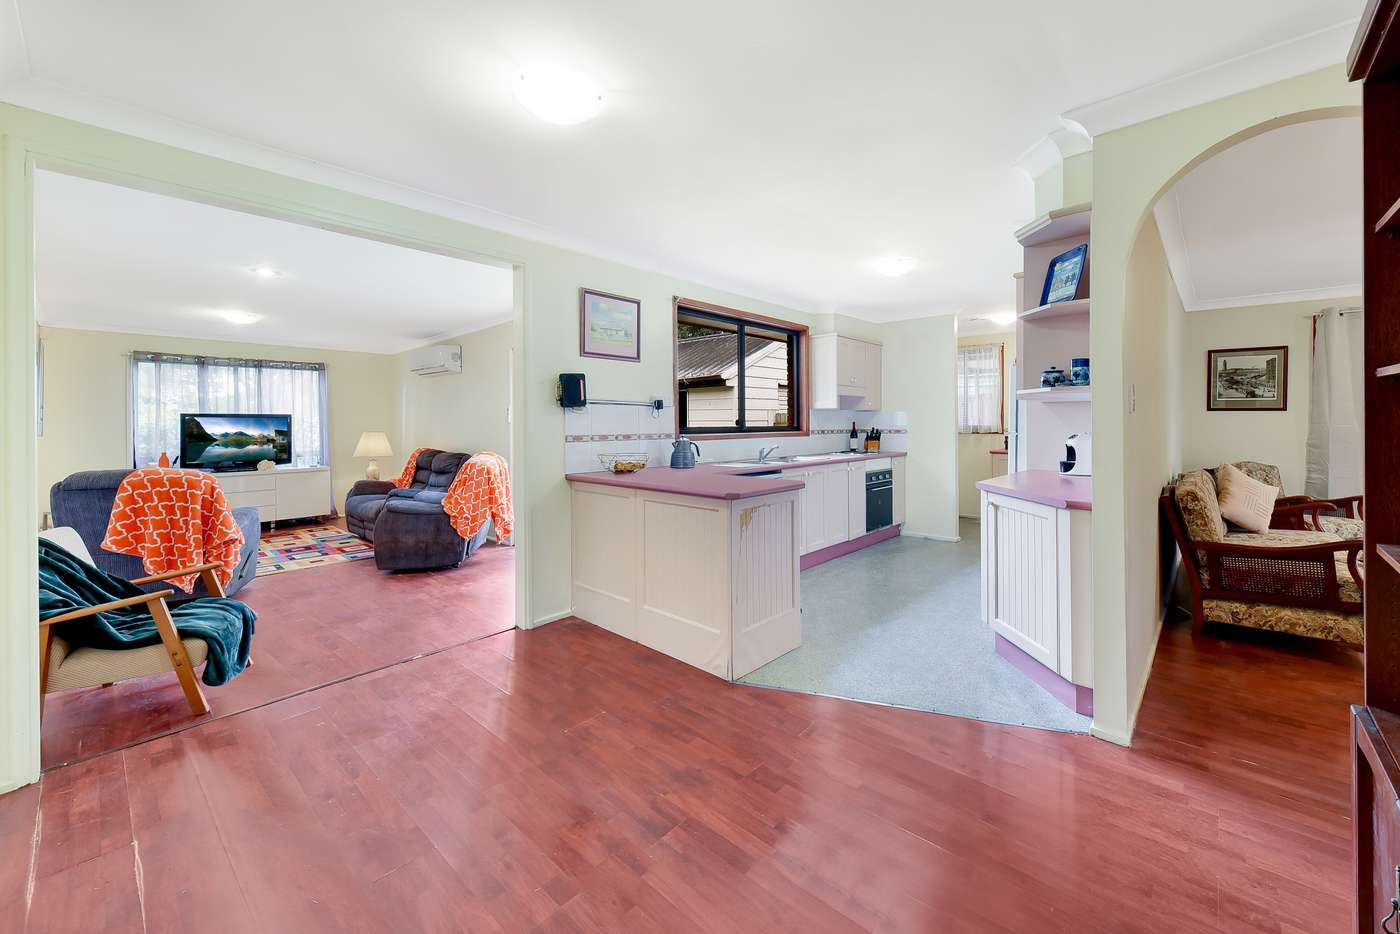 Fifth view of Homely house listing, 21 Naylor Place, Ingleburn NSW 2565